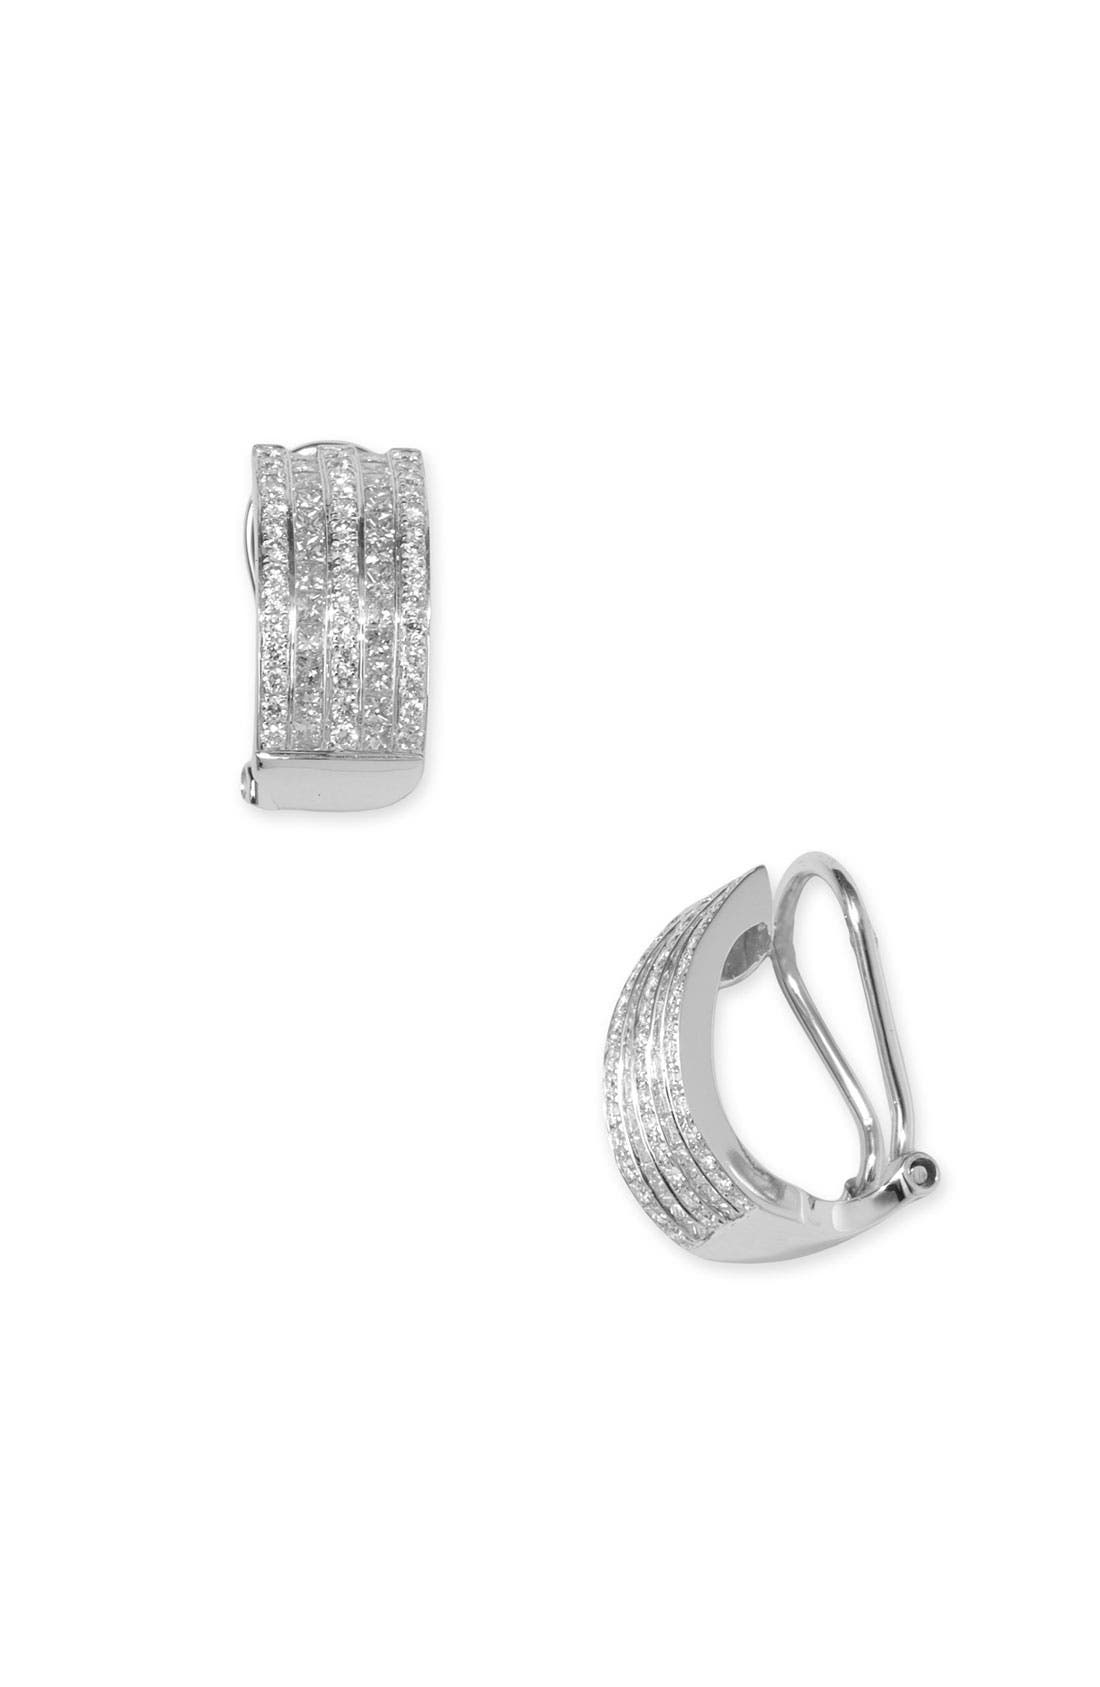 Alternate Image 1 Selected - Bony Levy Five Row Diamond Earrings (Nordstrom Exclusive)